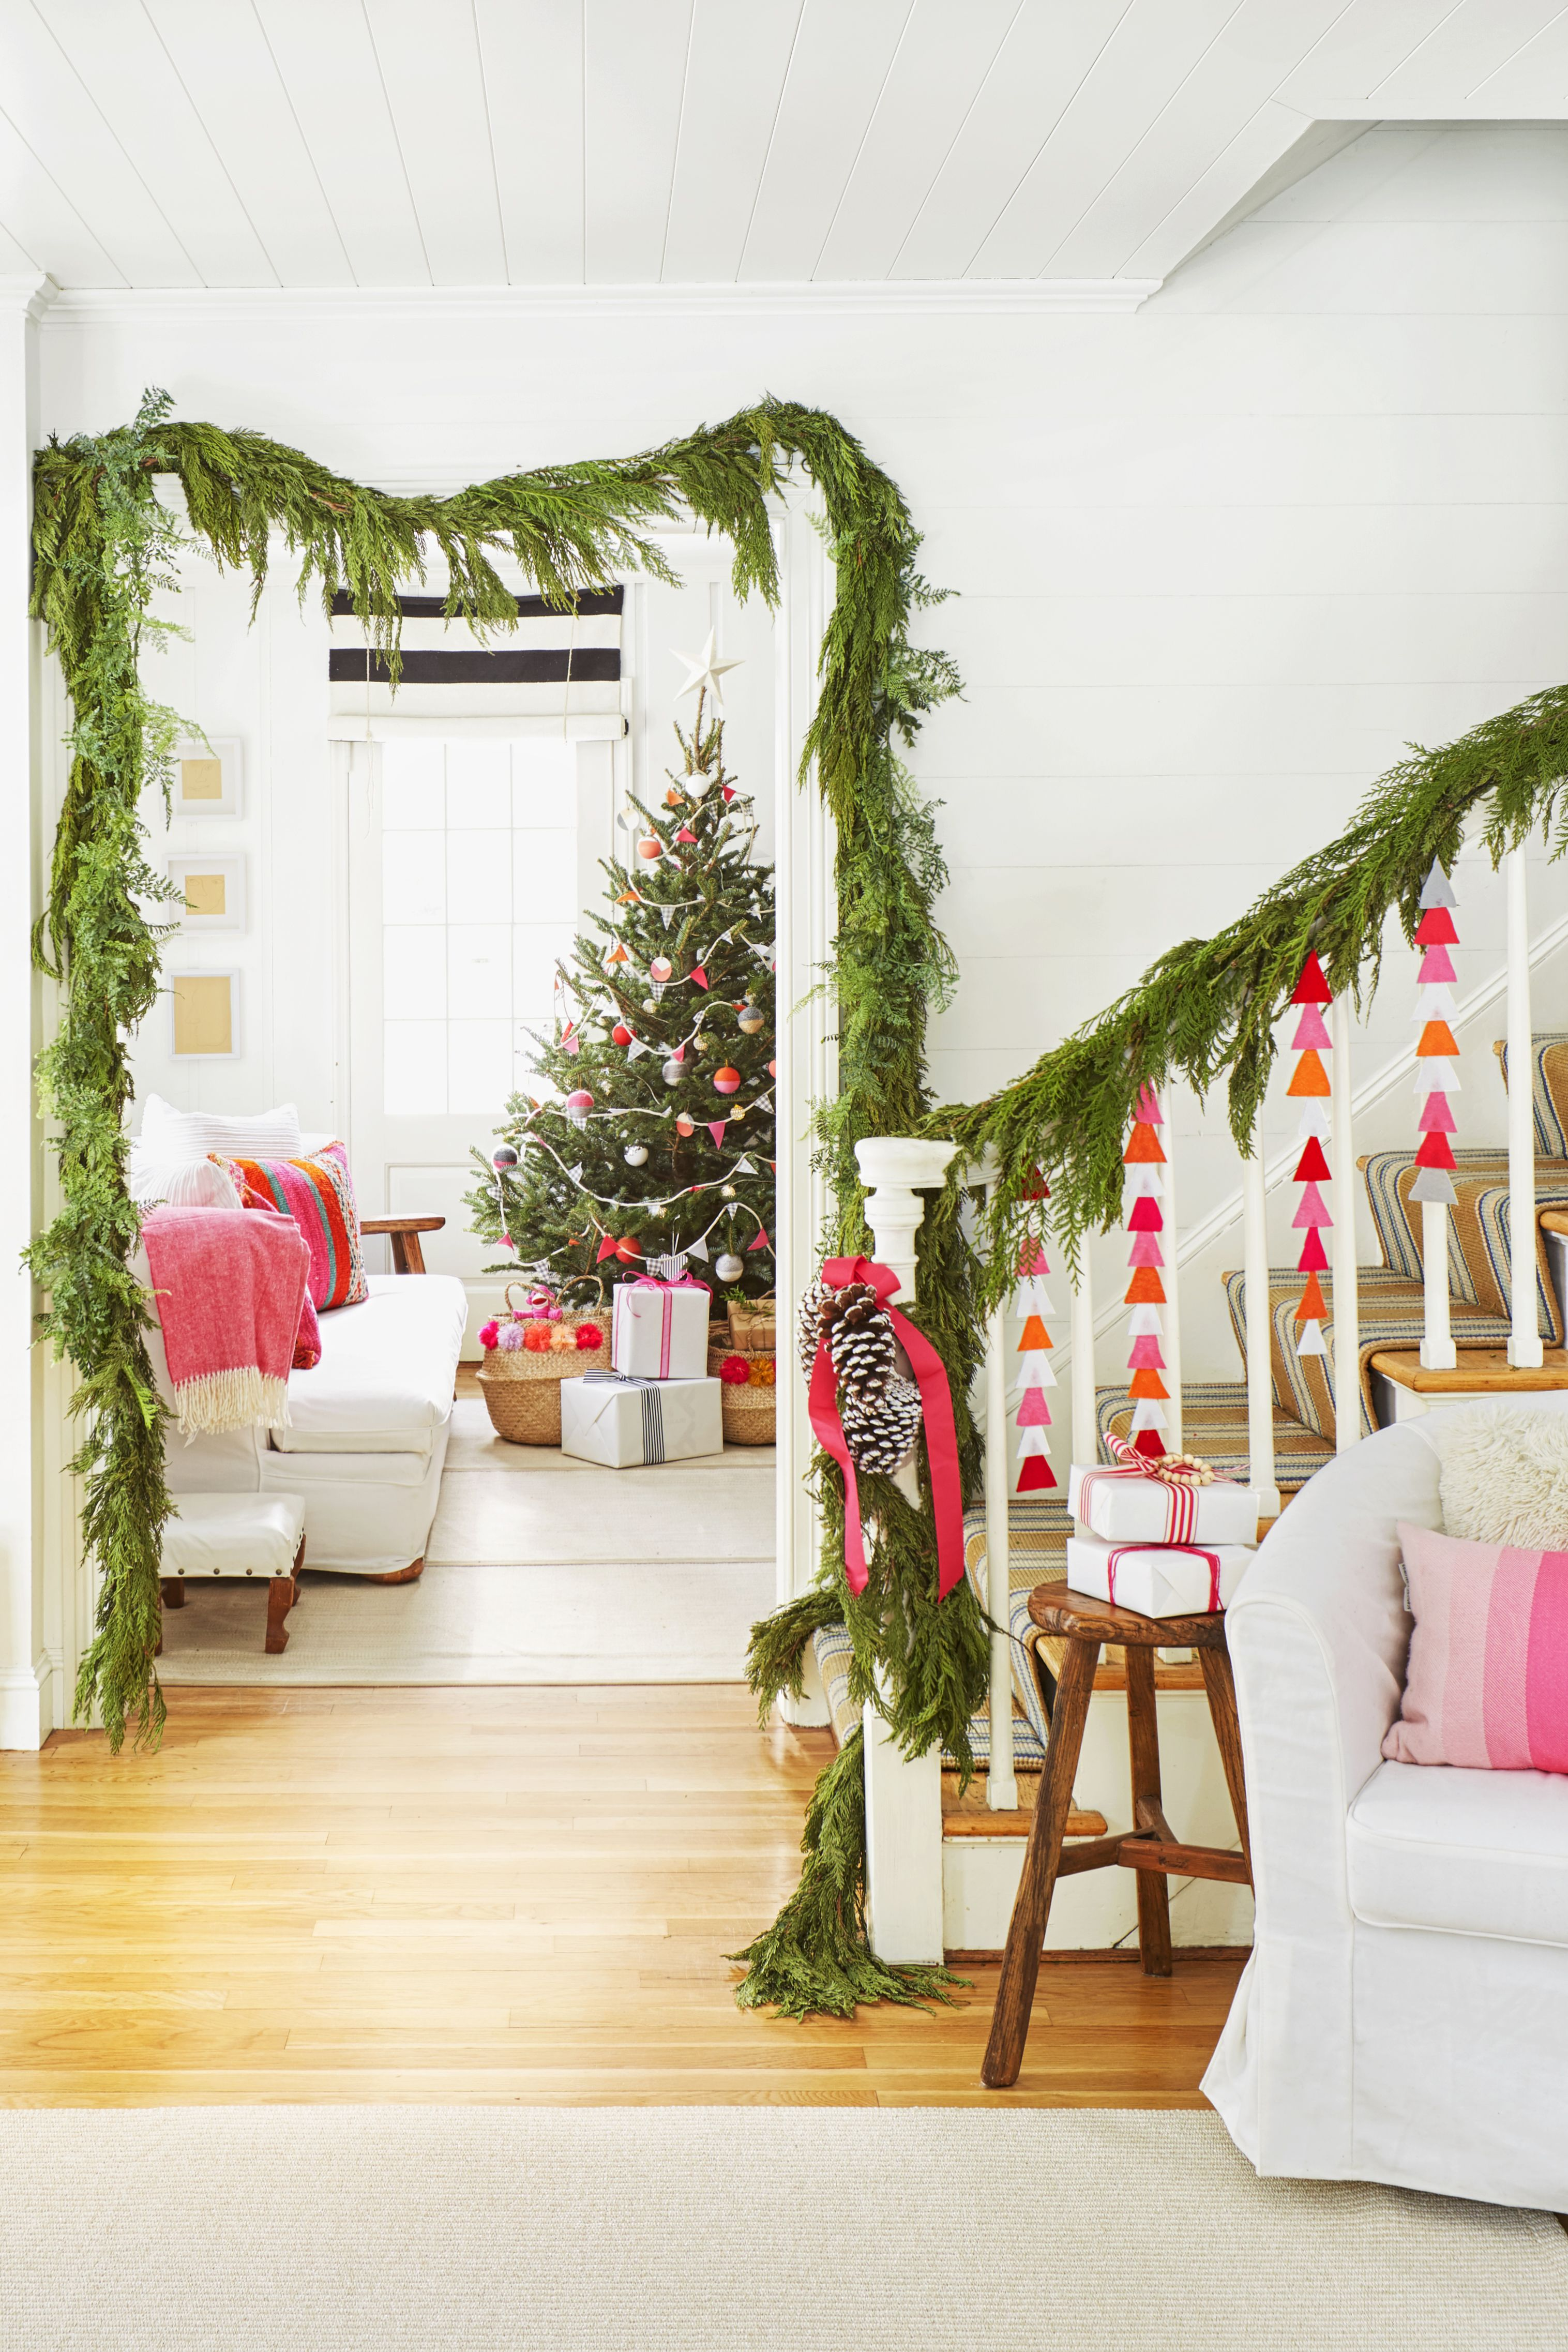 7 Best Christmas Party Themes Ideas For A Holiday Party